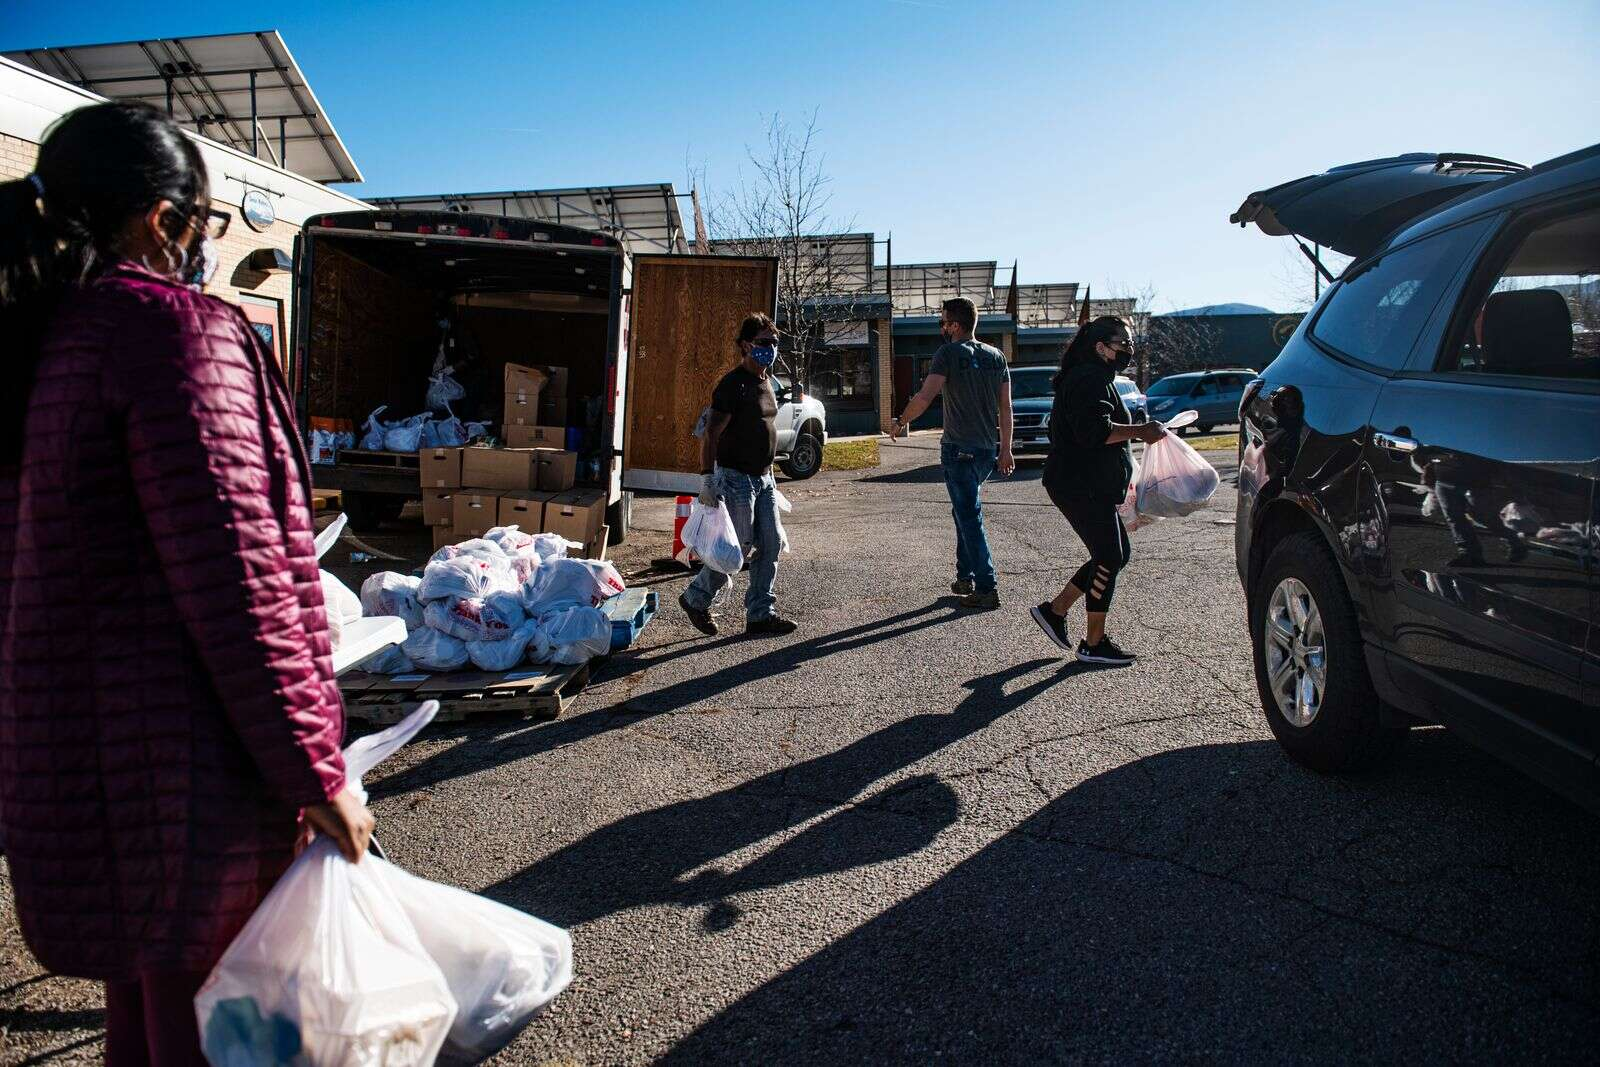 Lift-Up staff and volunteers carry bags of food to familyu2019s vehicles during a distribution at Third Street Center in Carbondale on Monday, Nov. 16, 2020. (Kelsey Brunner/The Aspen Times)